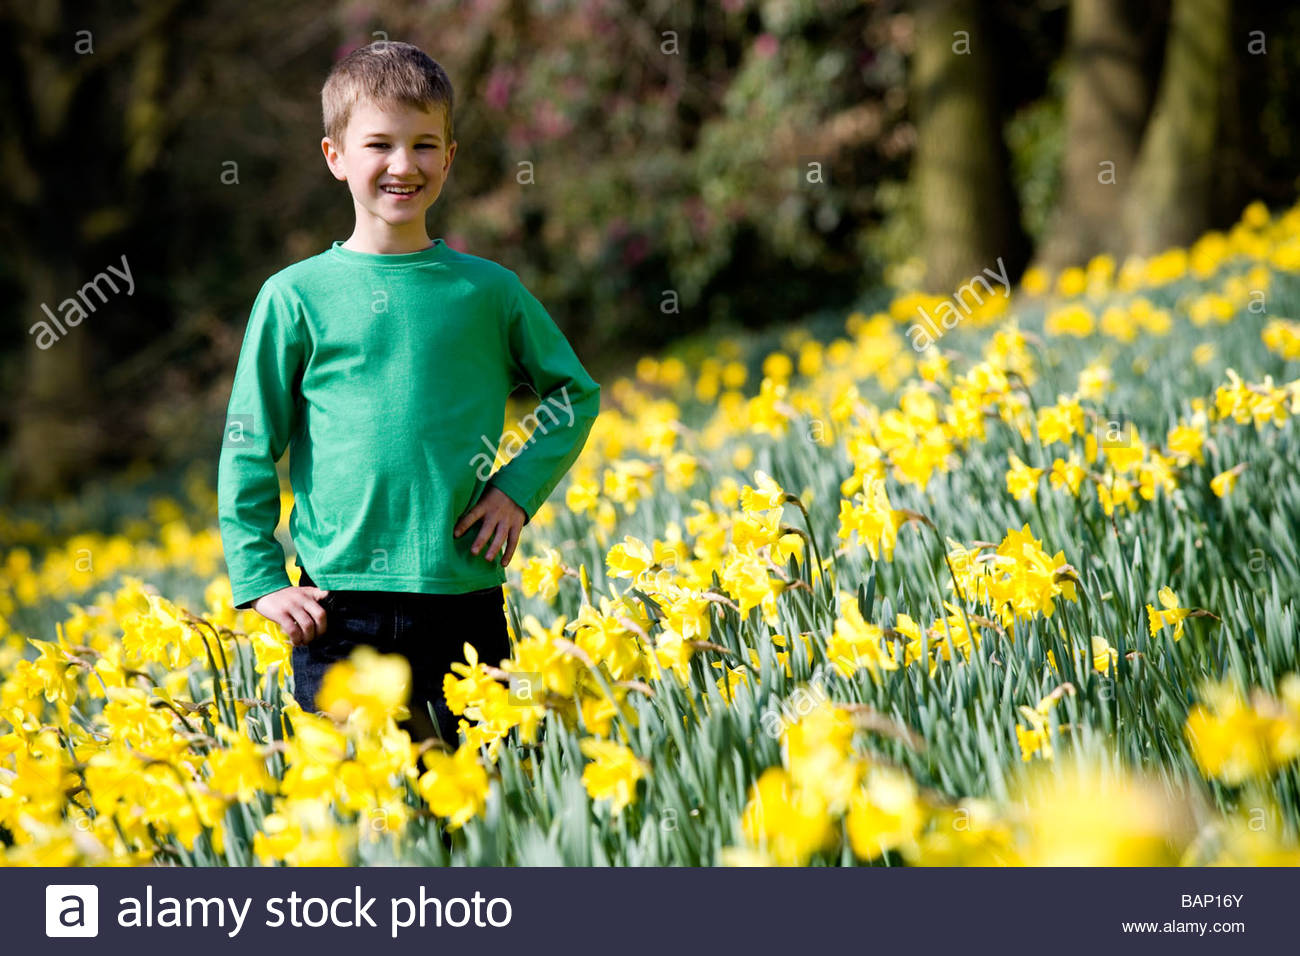 A young boy standing in a field of daffodils, smiling - Stock Image